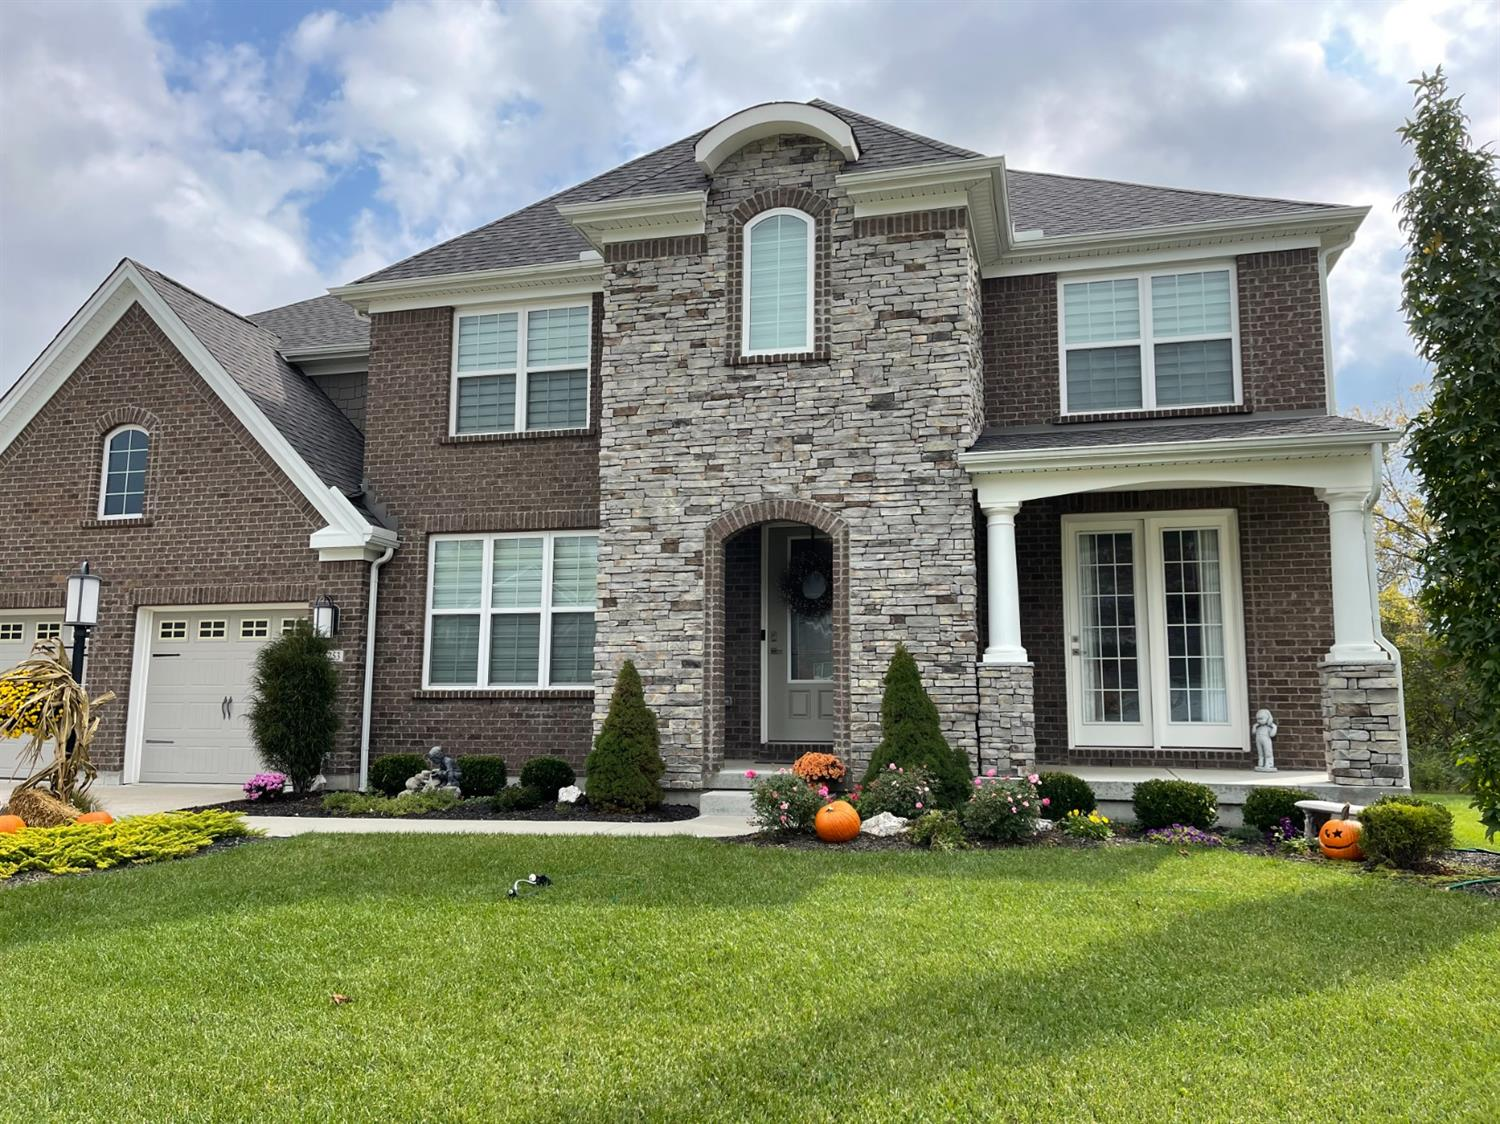 6253 Orchard Crossing, Mason, Ohio 45040, 4 Bedrooms Bedrooms, 10 Rooms Rooms,4 BathroomsBathrooms,Single Family Residence,For Sale,Orchard Crossing,1719939